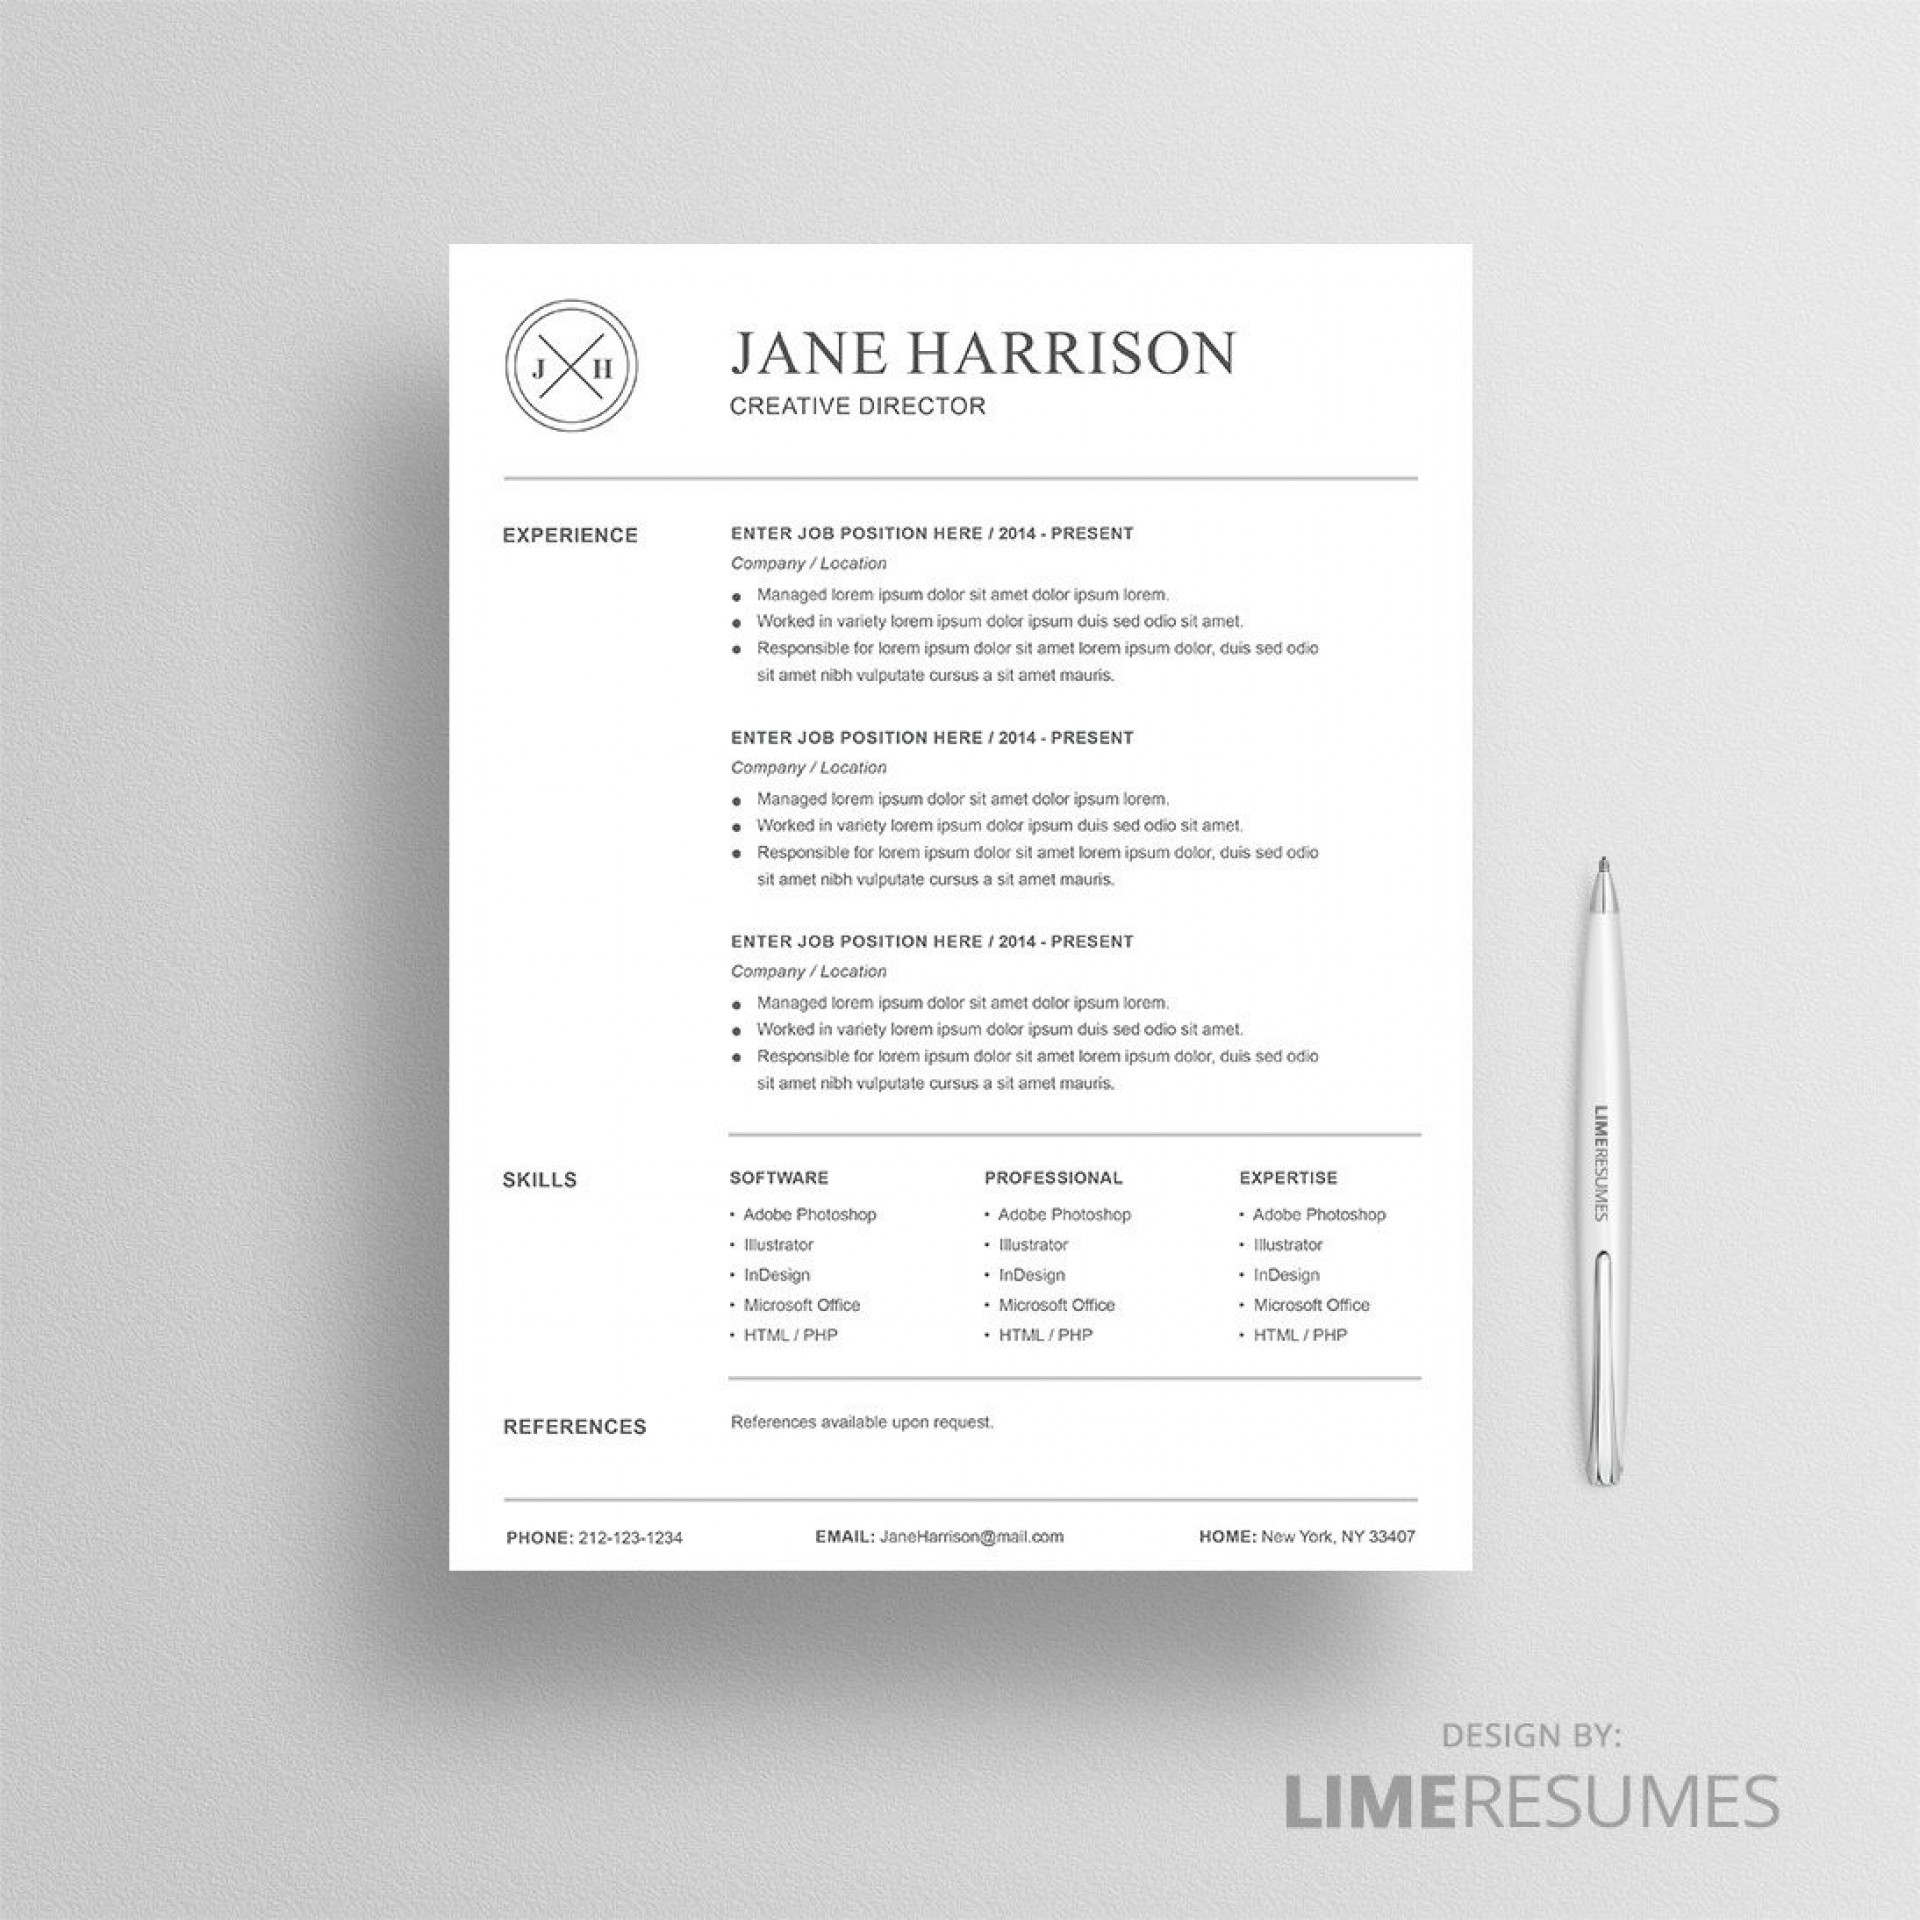 008 Beautiful Resume Reference List Template Microsoft Word High Resolution 1920